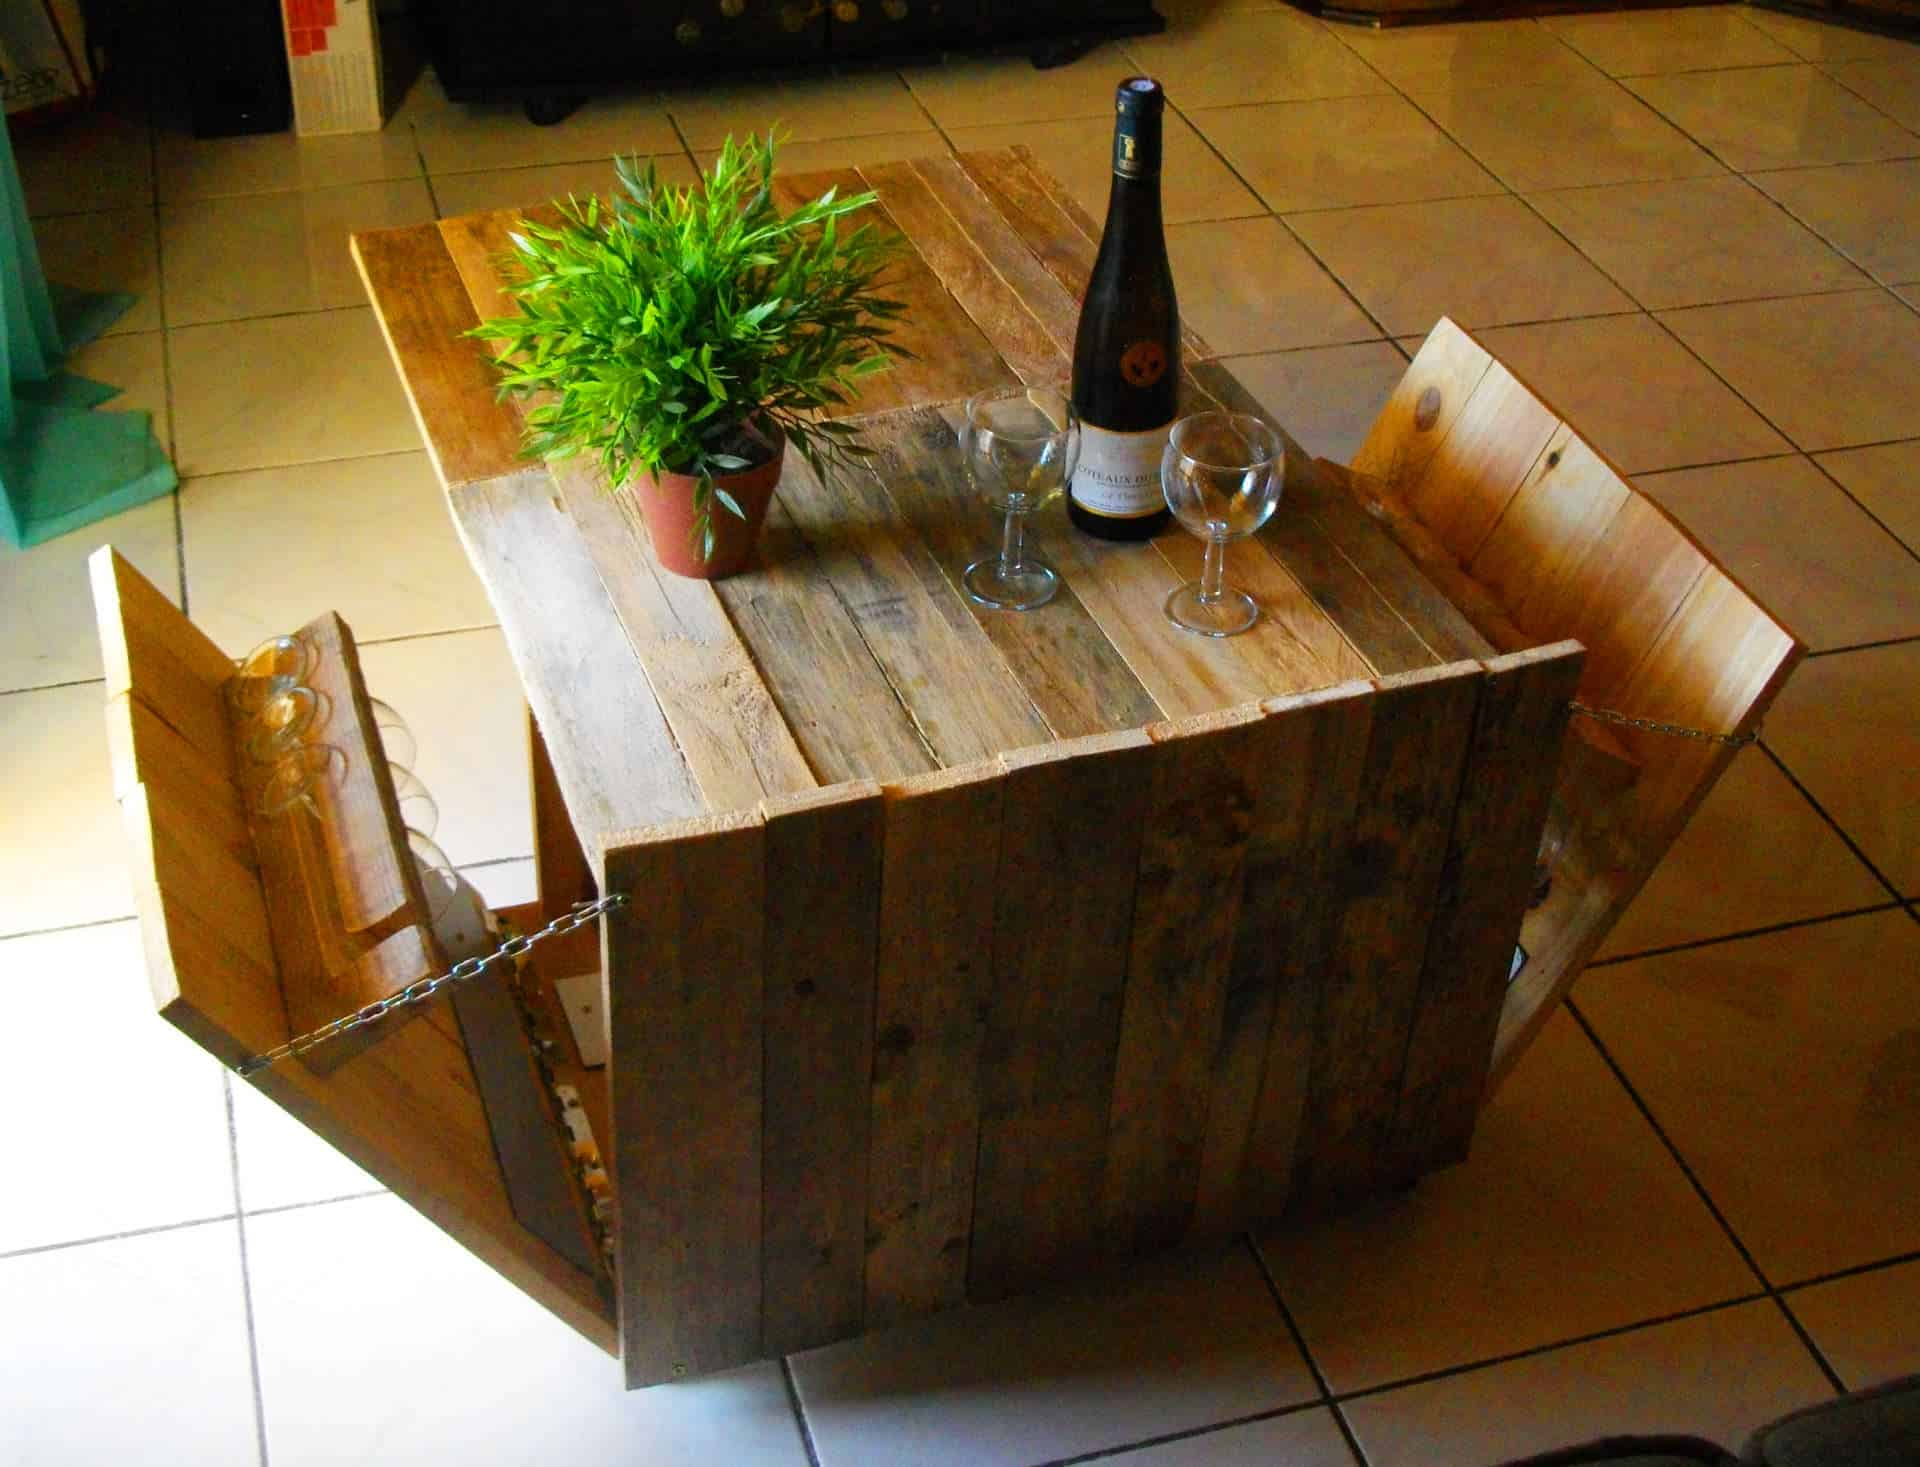 Diy pdf tutorial modular pallet coffee table 1001 pallets free download - Table basse modulable bois ...